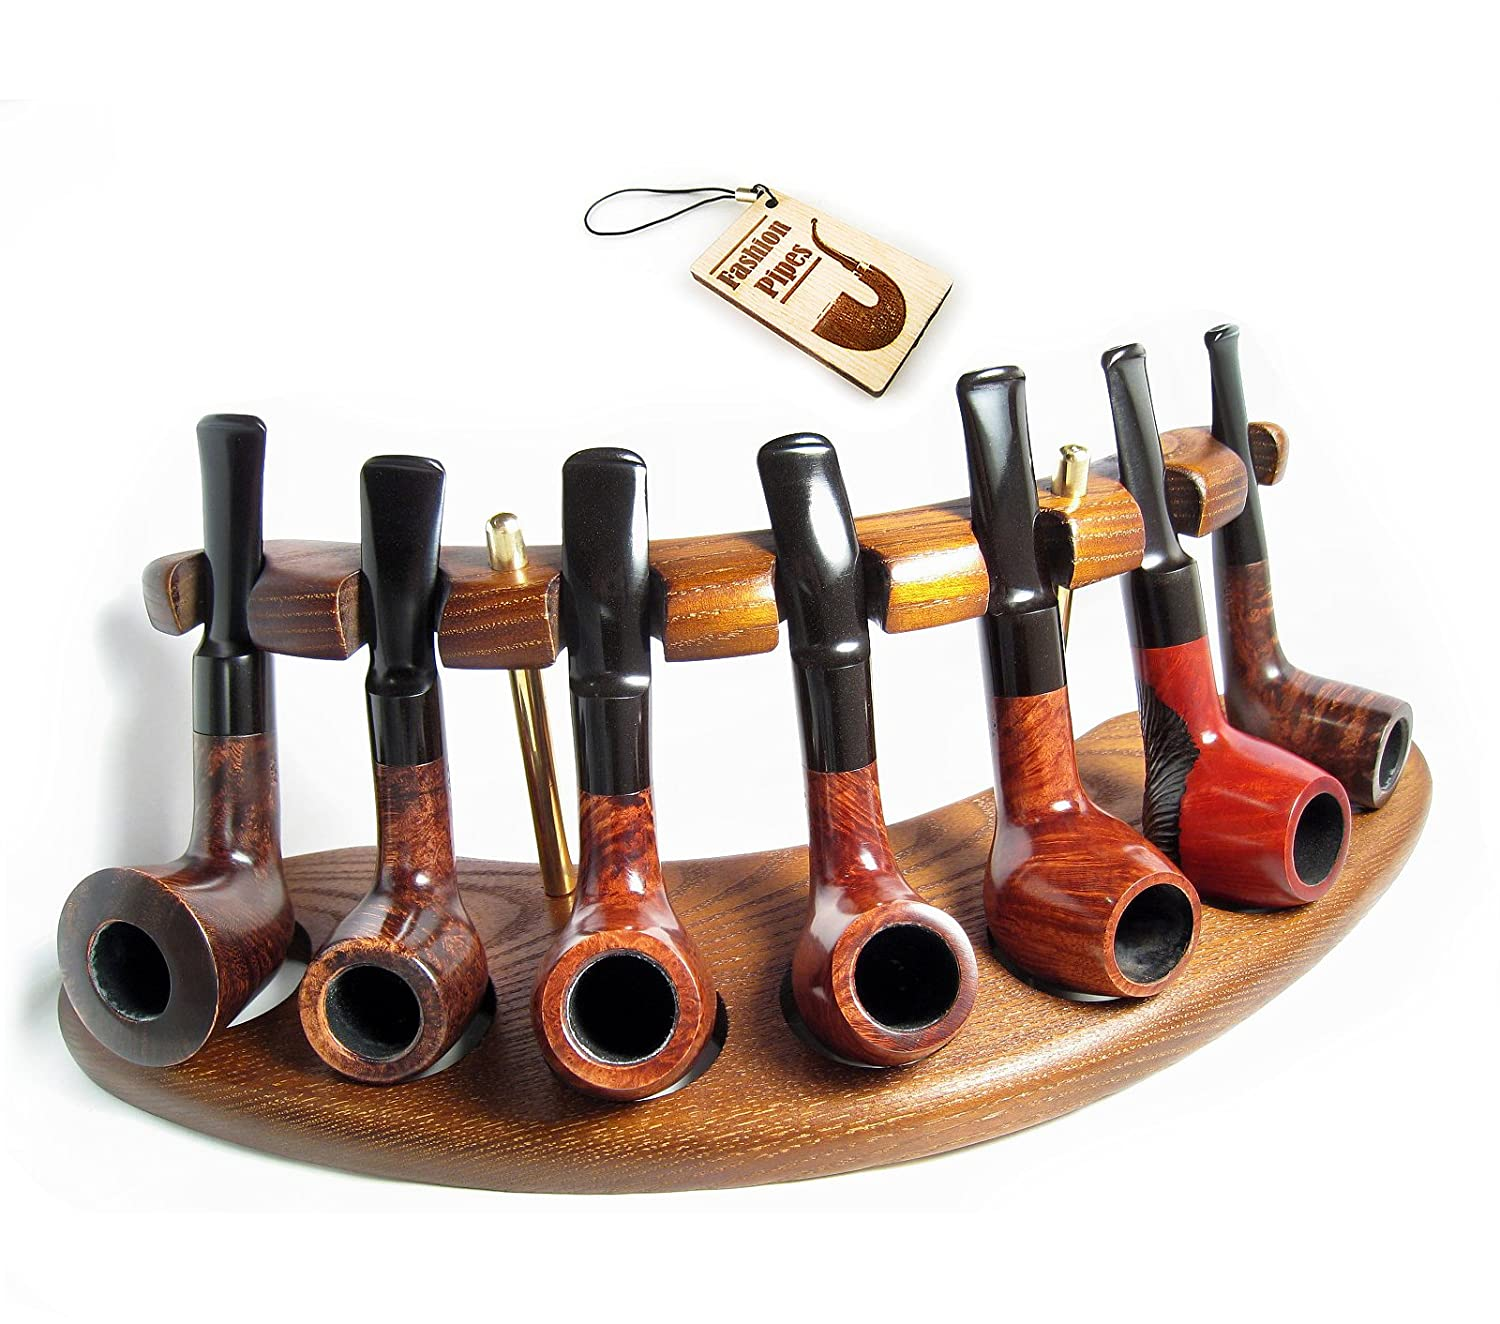 New Wooden Pipe Stand Rack Holder for 7 Tobacco Pipes. Handcrafted (7) Fashion Pipes